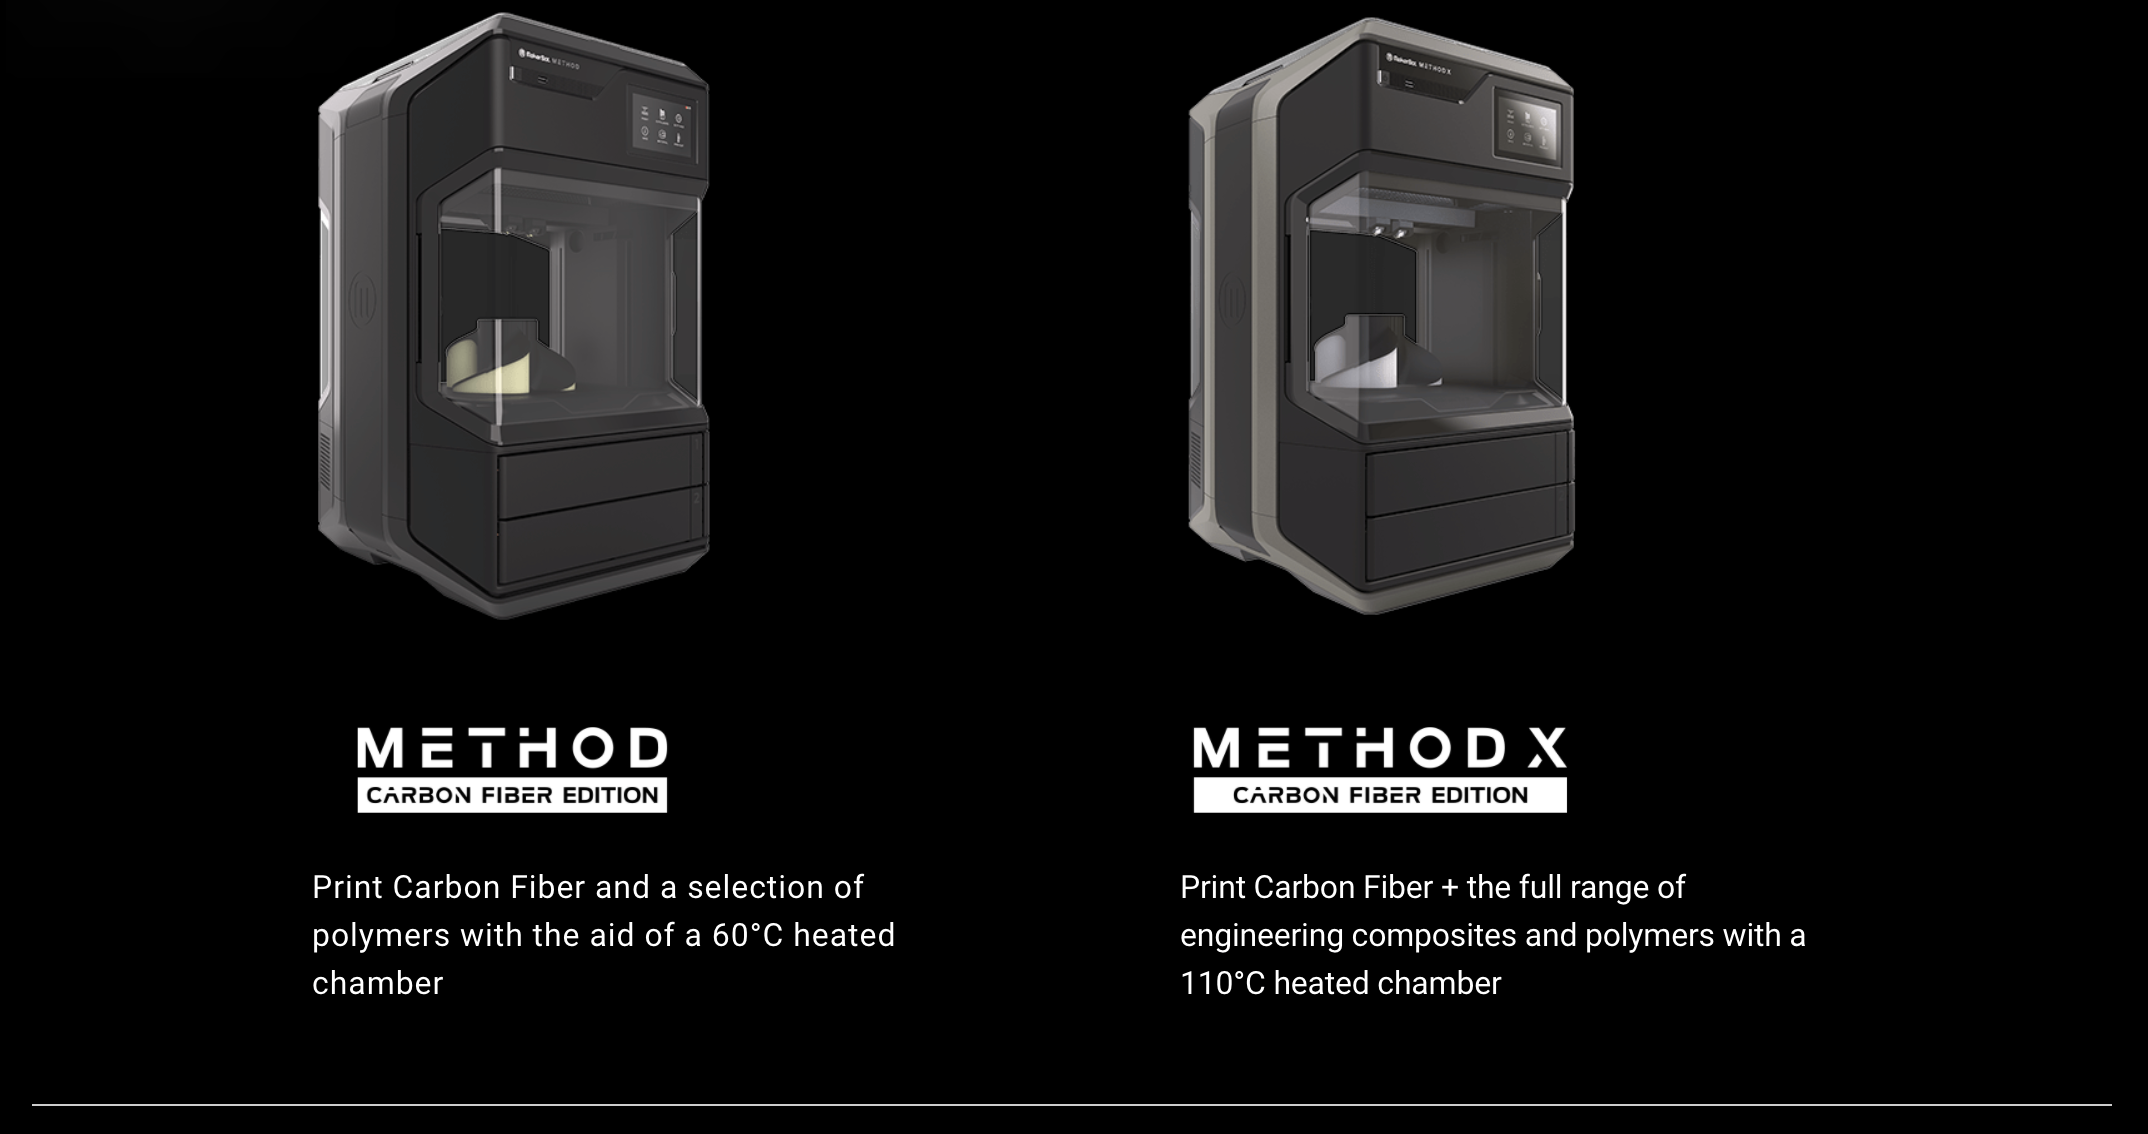 MakerBot-METHOD-3D-Printer-Description-5